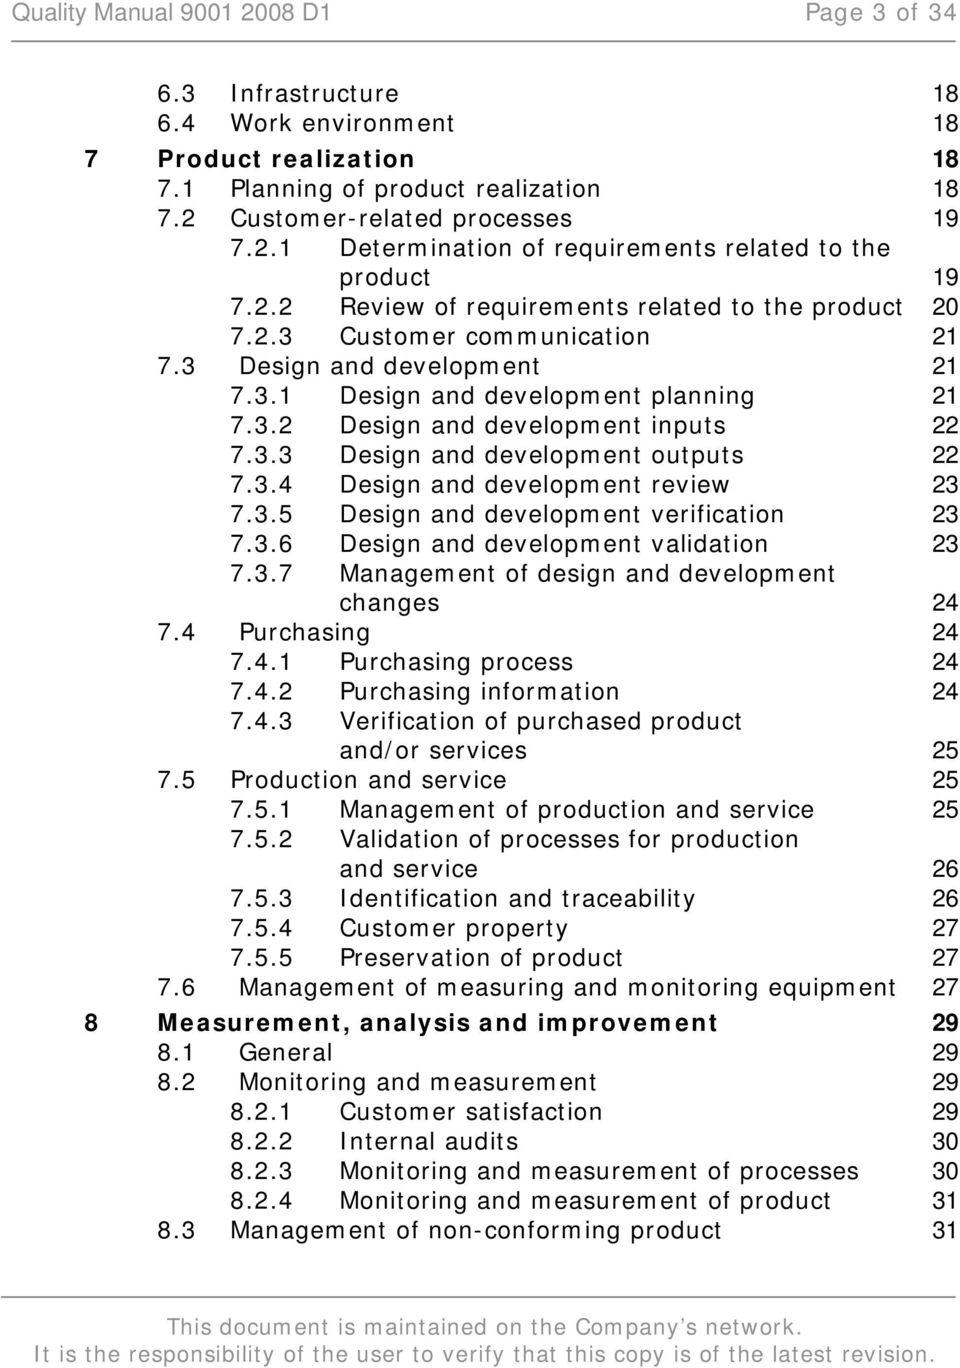 3.4 Design and development review 23 7.3.5 Design and development verification 23 7.3.6 Design and development validation 23 7.3.7 Management of design and development changes 24 7.4 Purchasing 24 7.